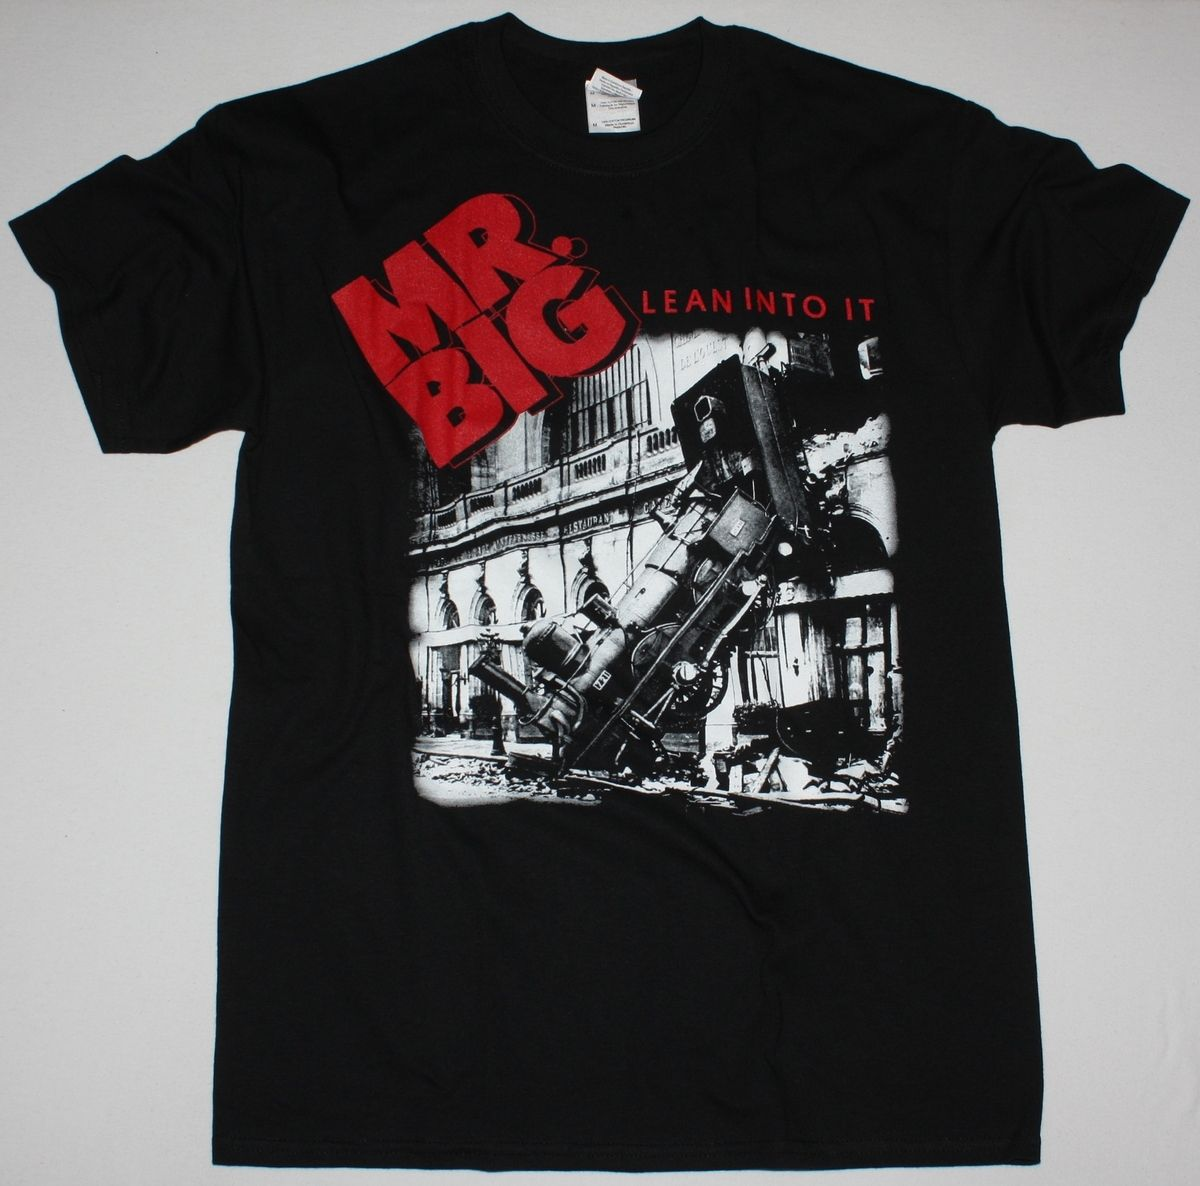 MR BIG LEAN INTO IT HARD ROCK BAND EXTREME IMPELLITTERI NEW BLACK T-SHIRT image